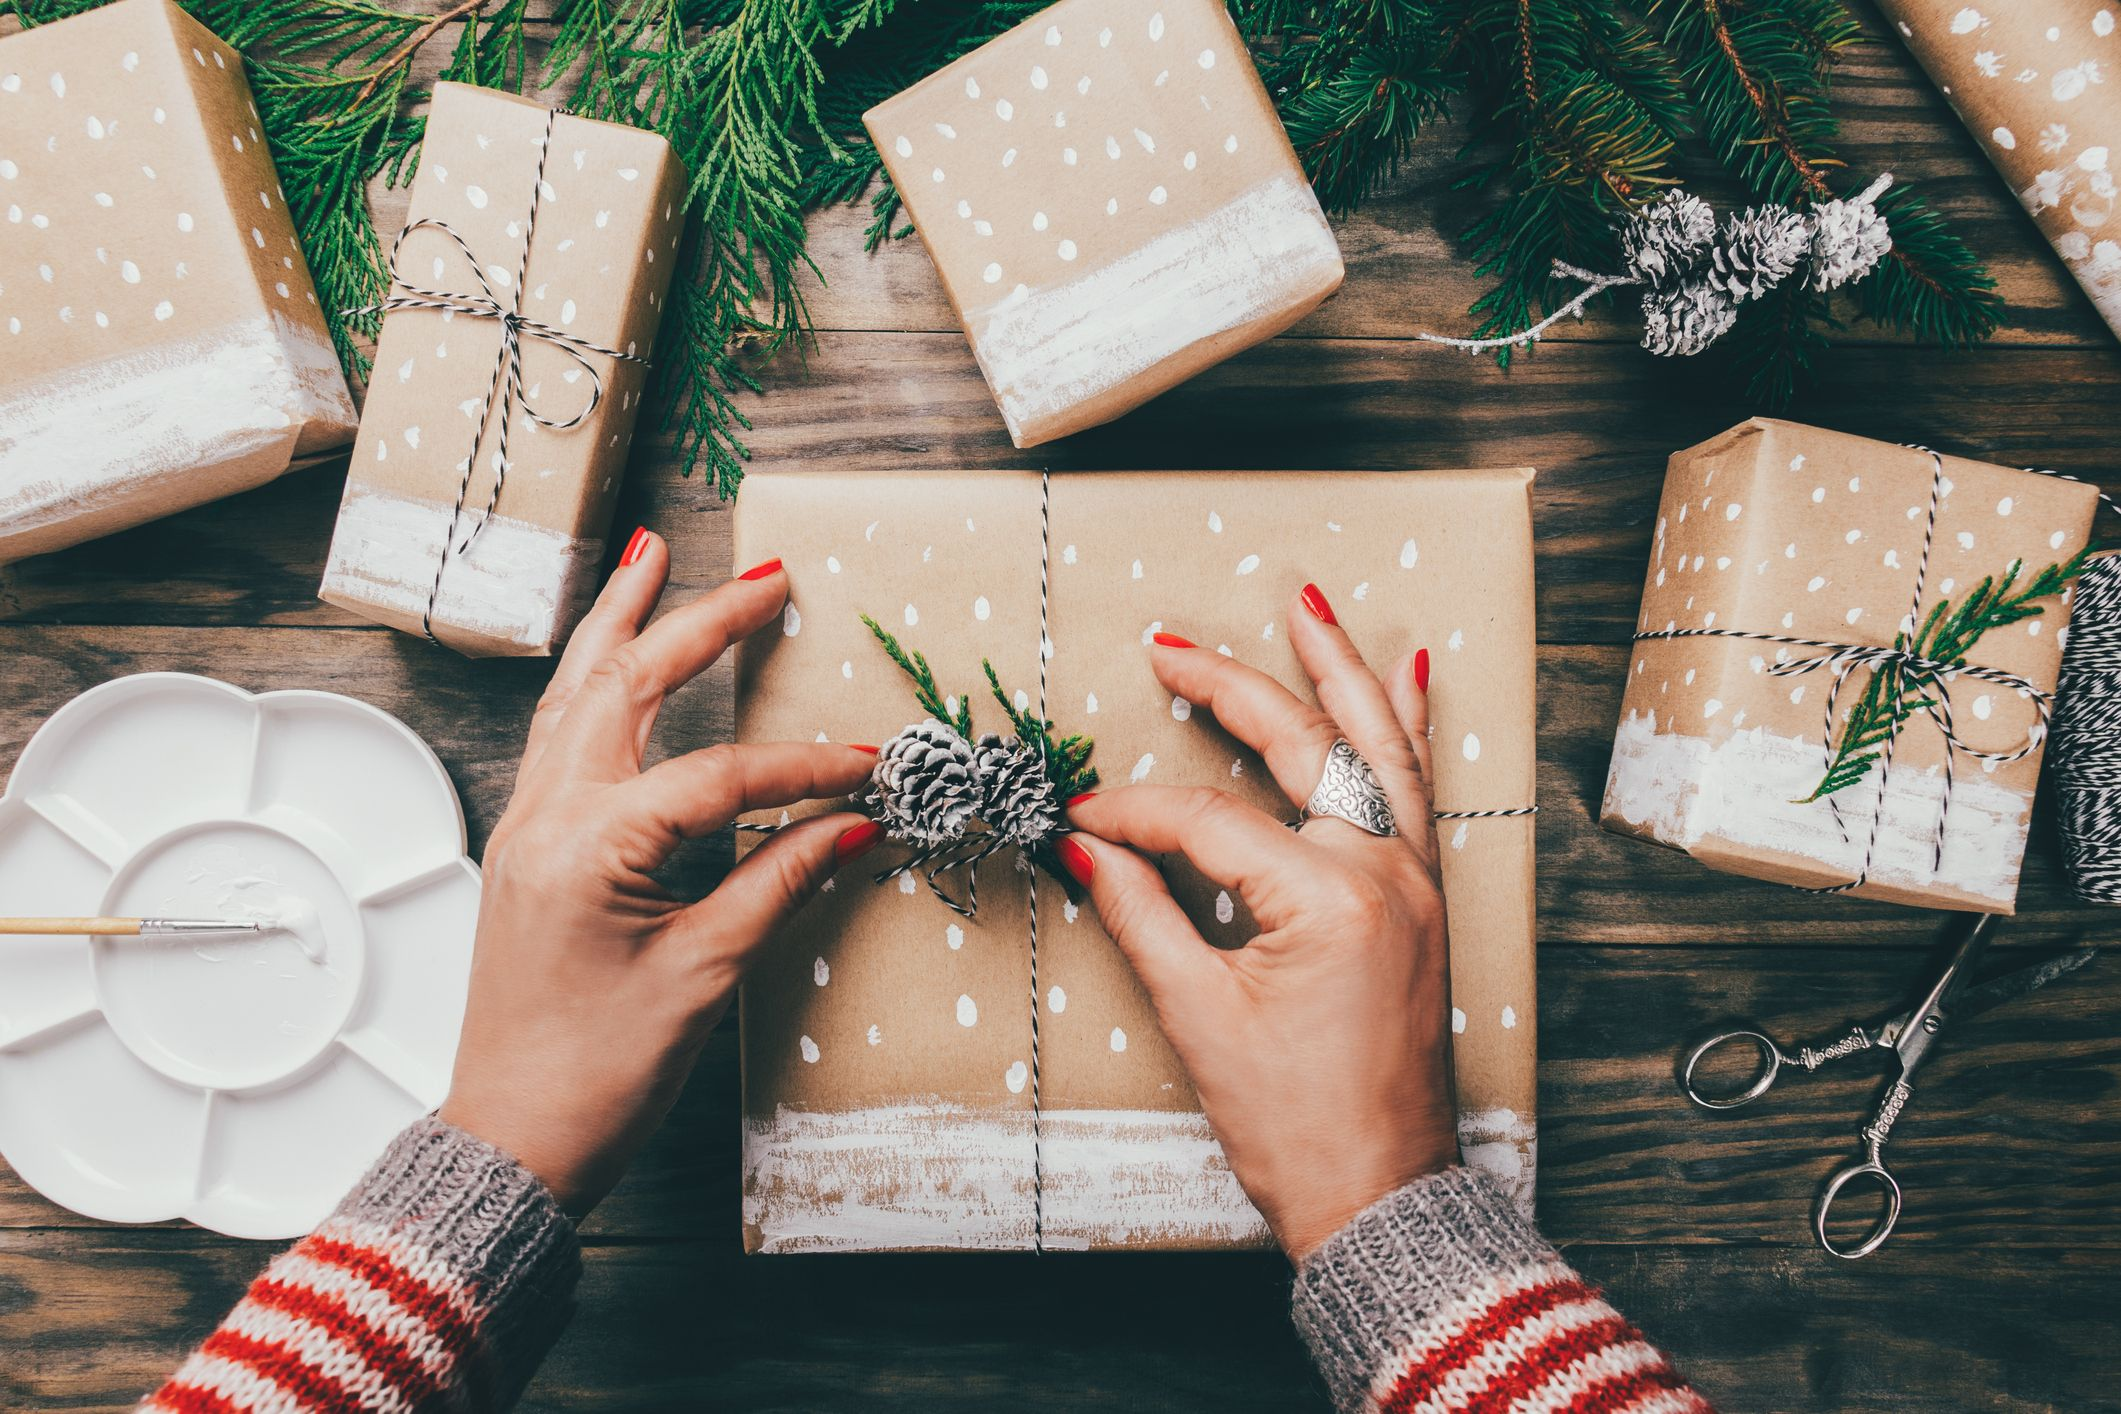 Why I Never Put Christmas Presents In Gift Bags How To Wrap Christmas Gifts